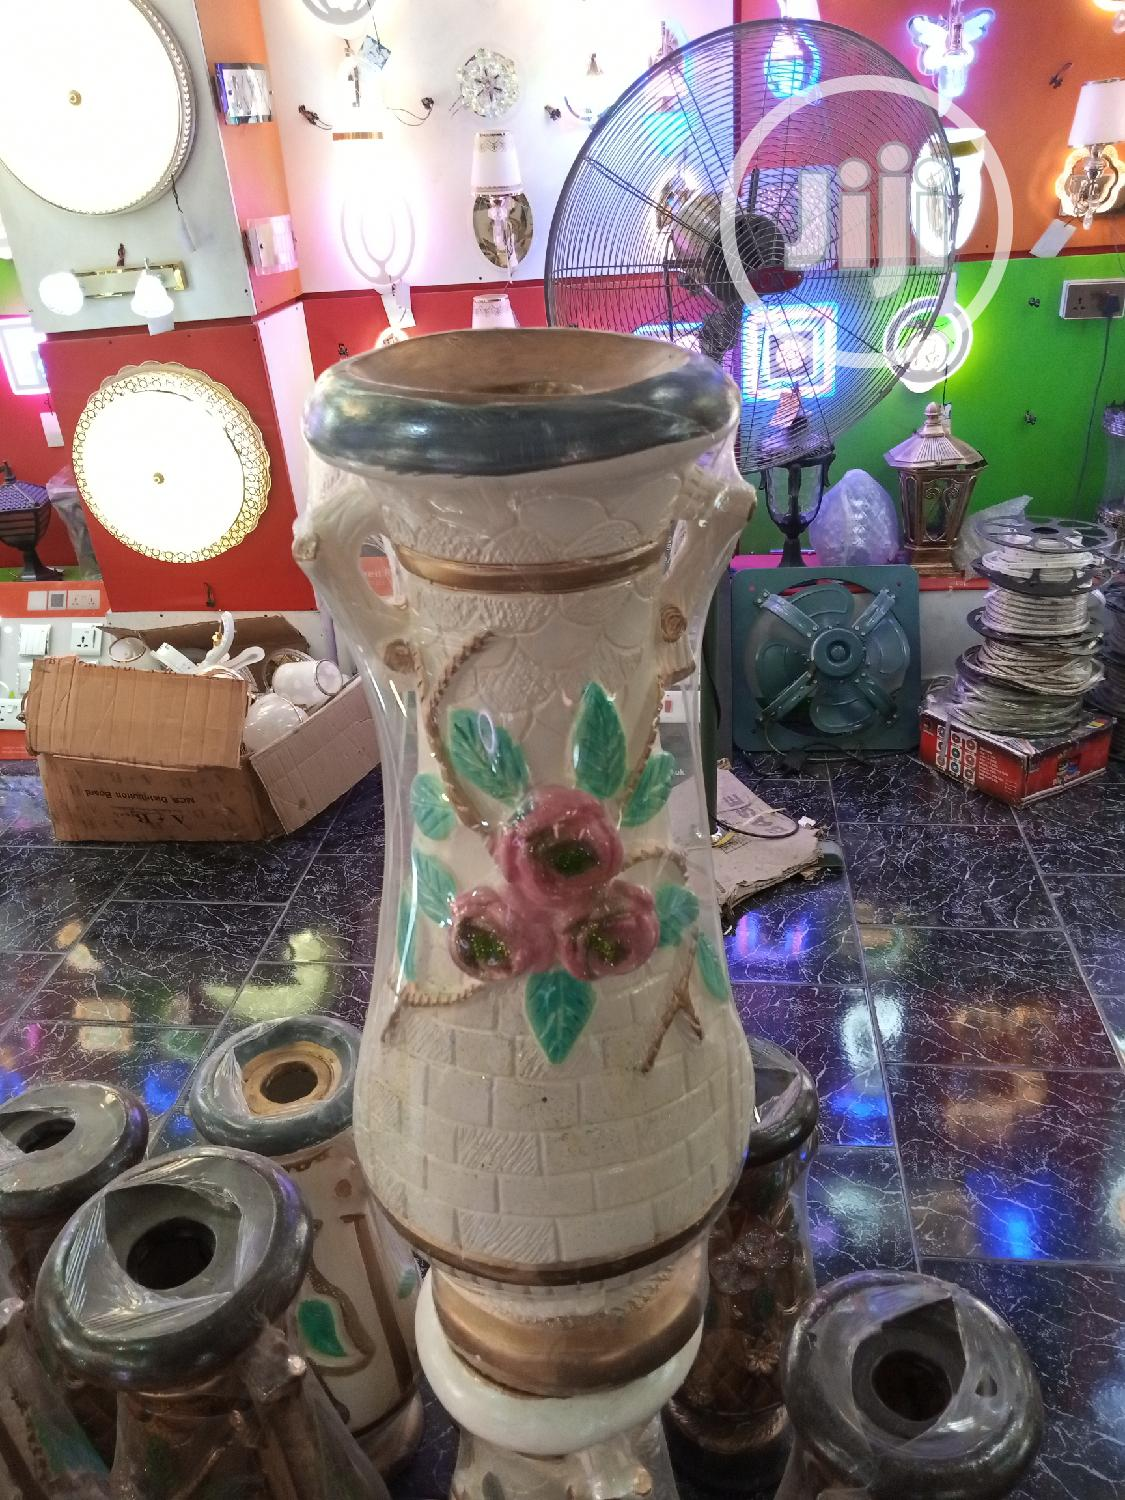 Archive: Rose Design Flowers Pot Noth Small And Big